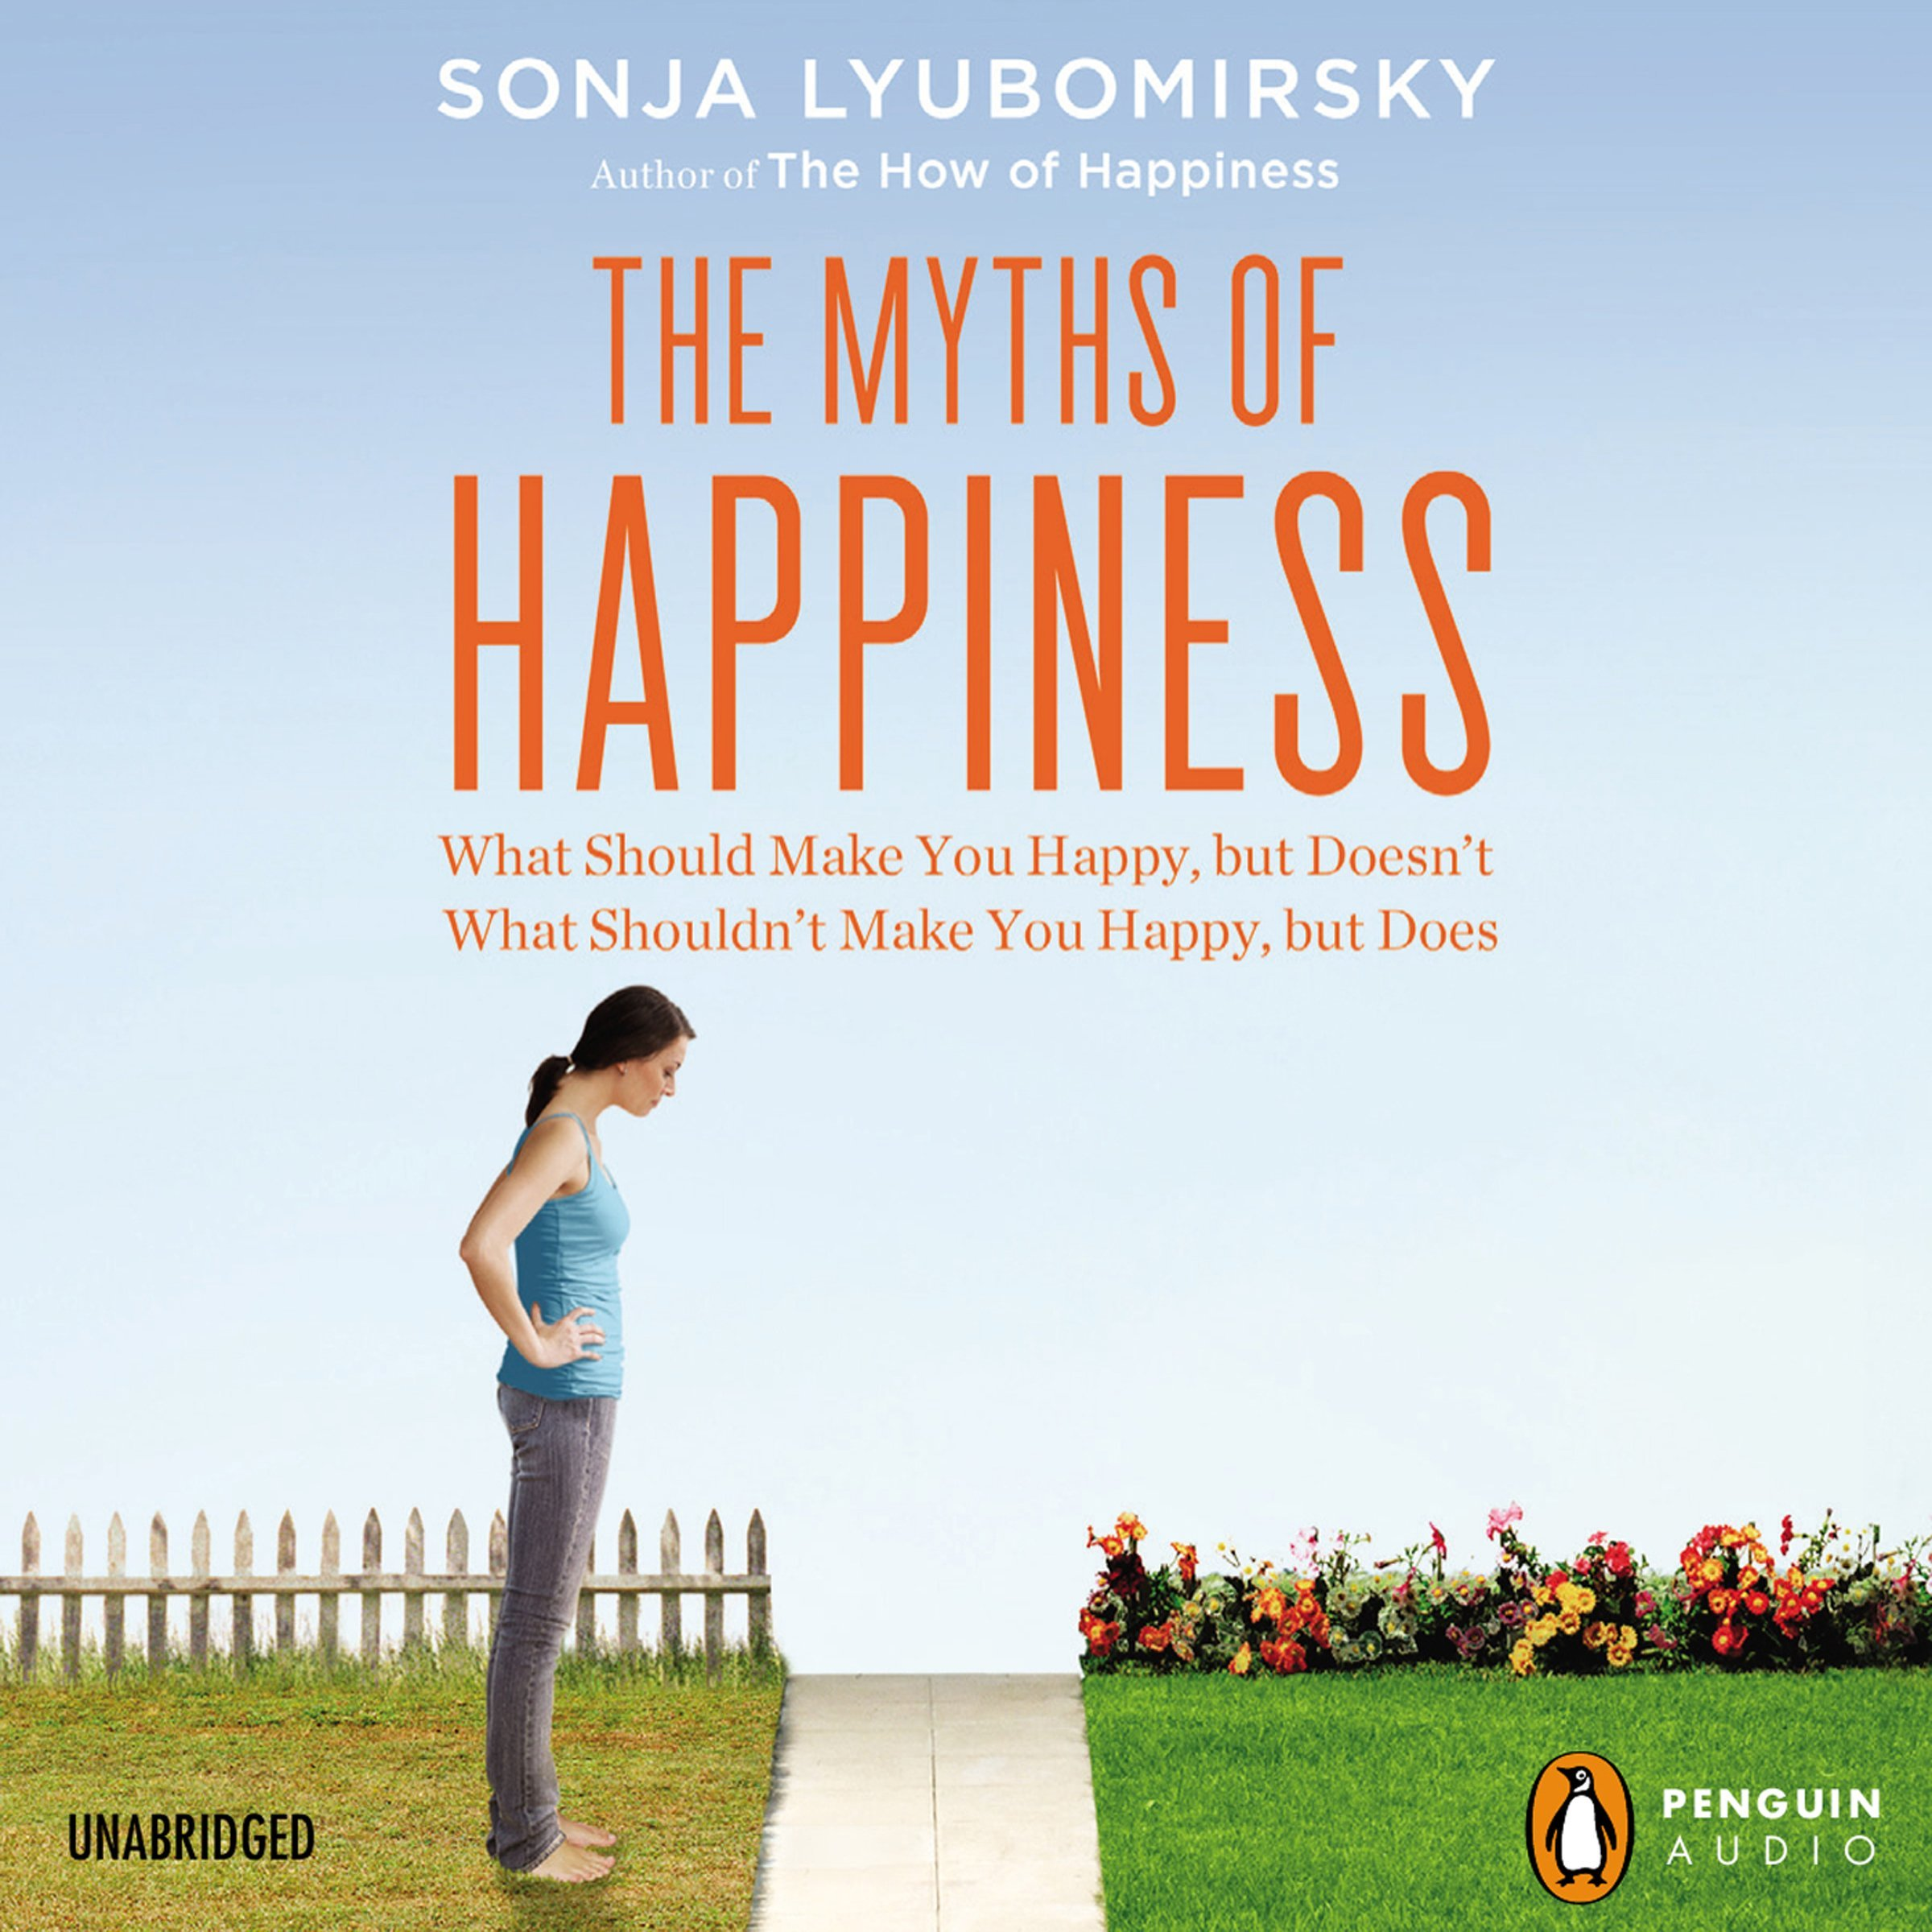 The Myths of Happiness: What Should Make You Happy, but Doesn't, What Shouldn't Make You Happy, but Does by Penguin Audio (Image #1)